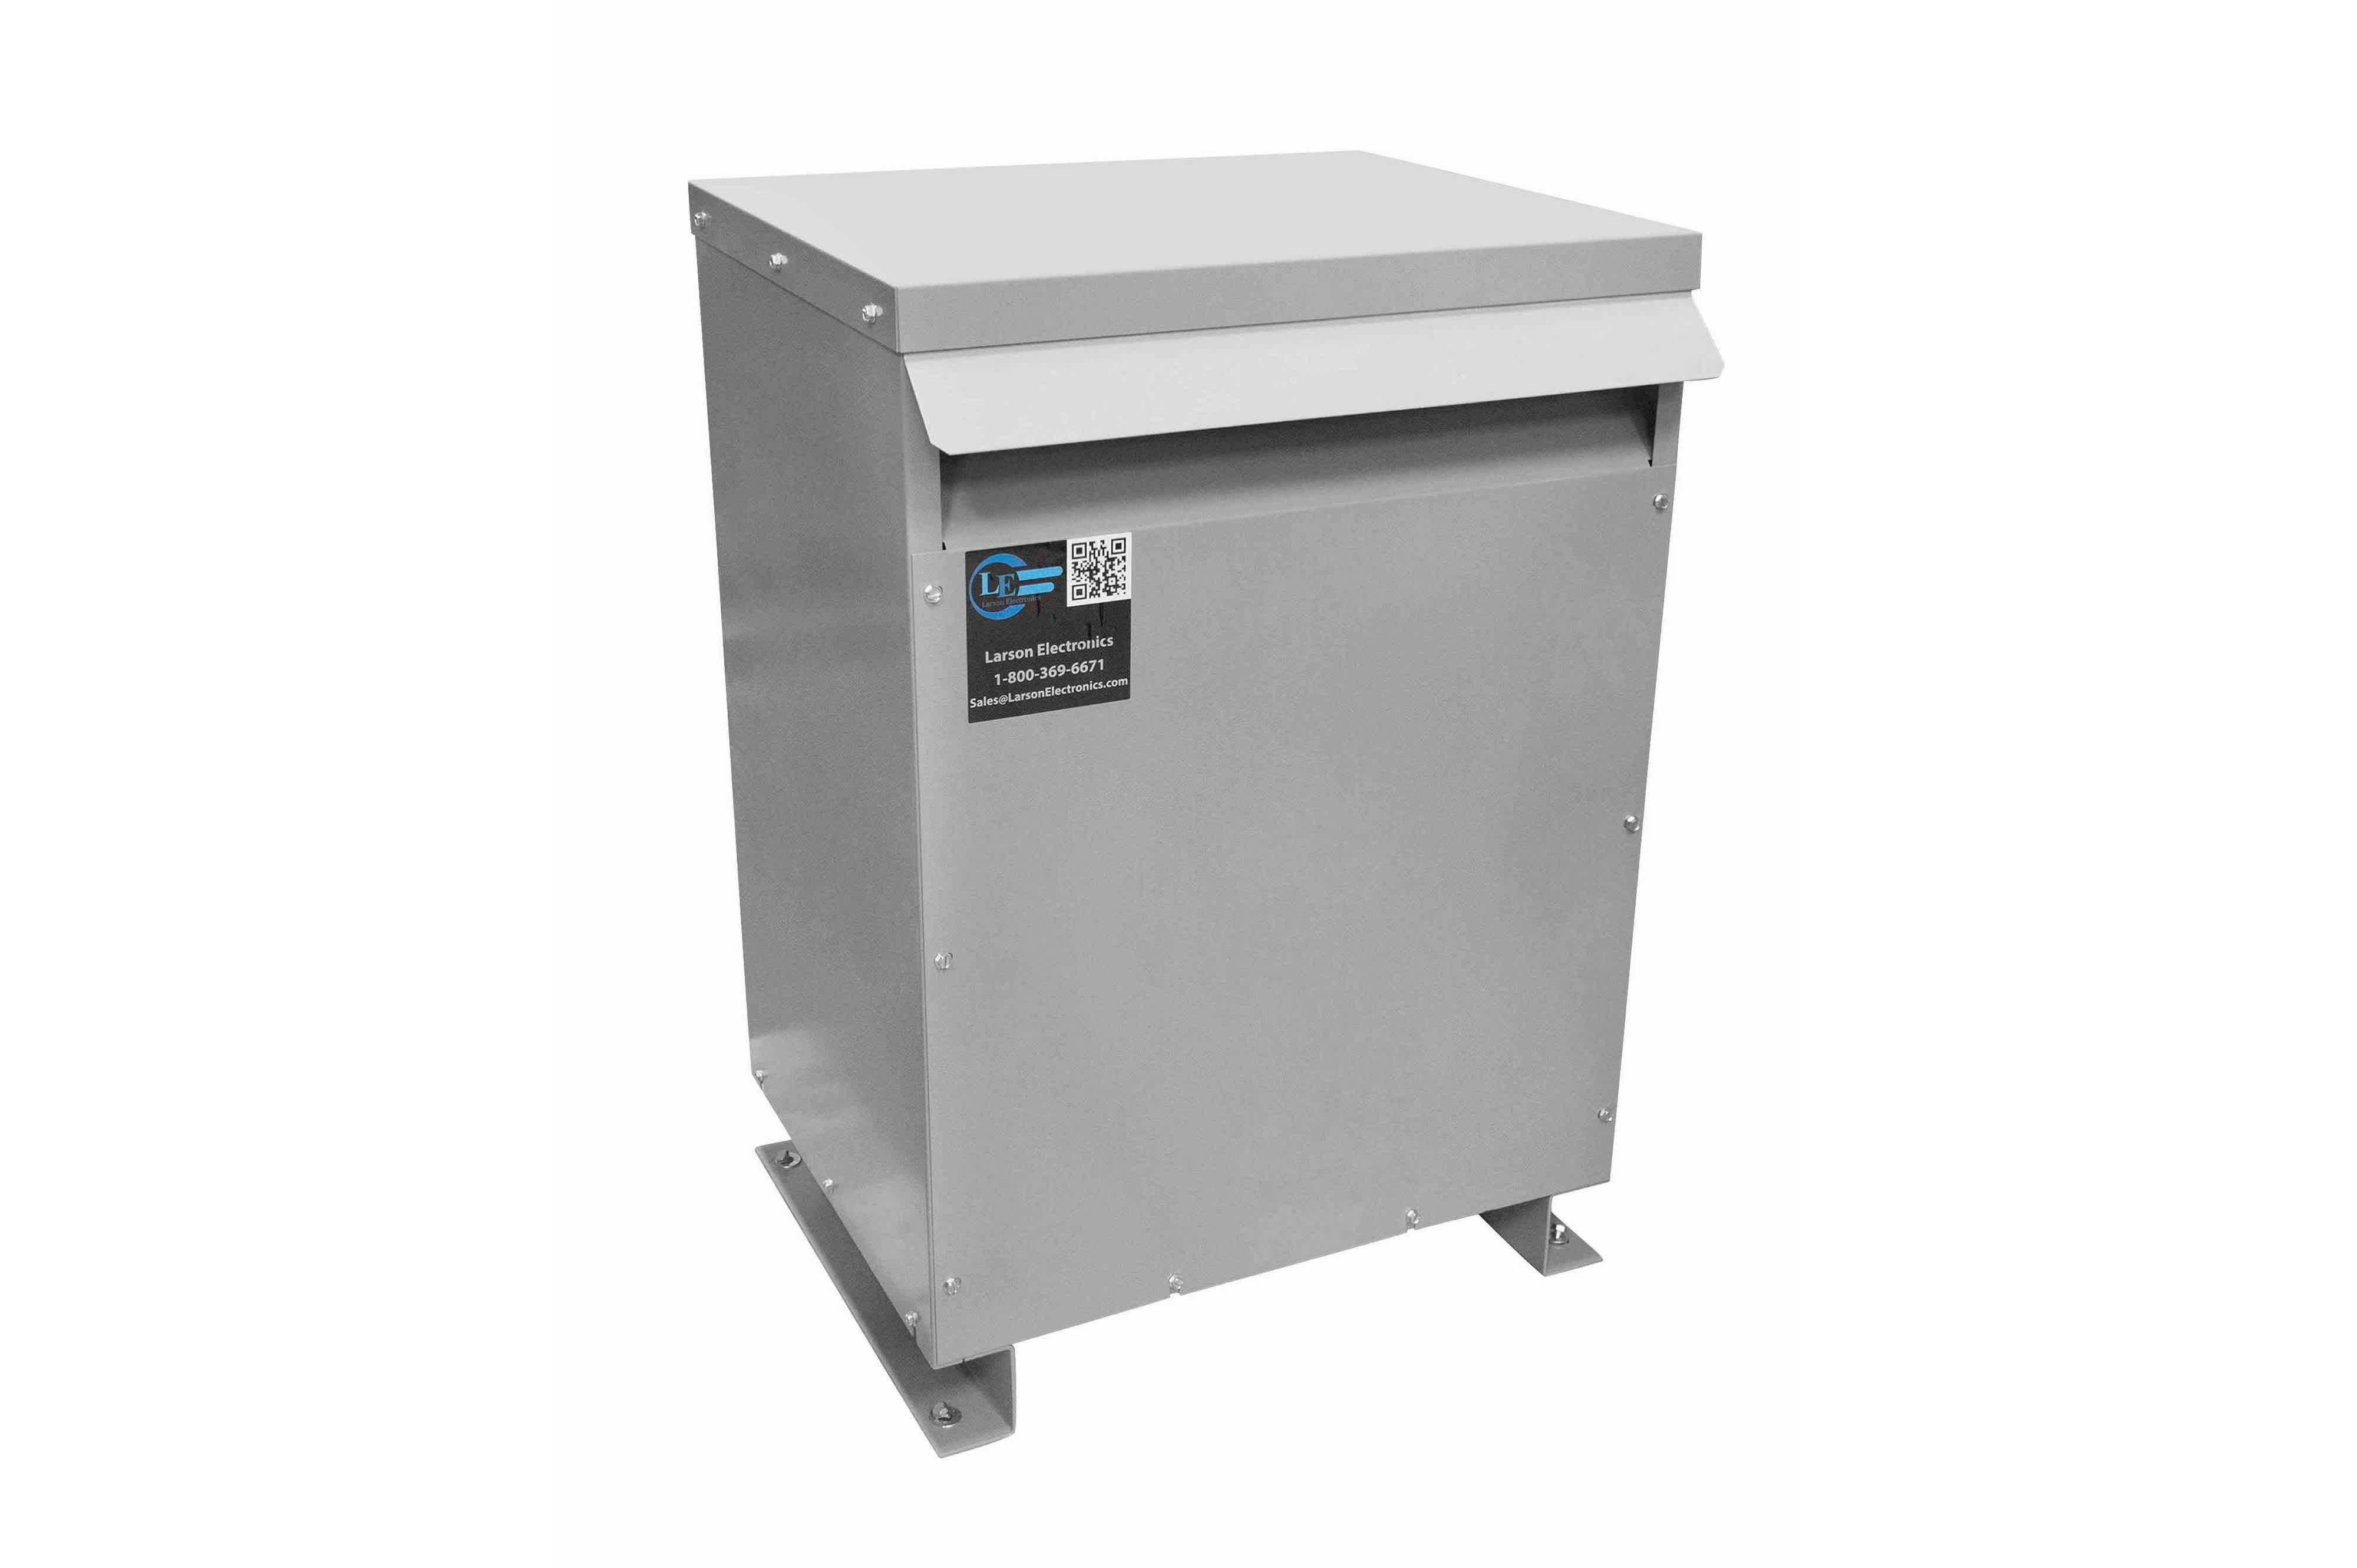 18 kVA 3PH Isolation Transformer, 208V Delta Primary, 240 Delta Secondary, N3R, Ventilated, 60 Hz